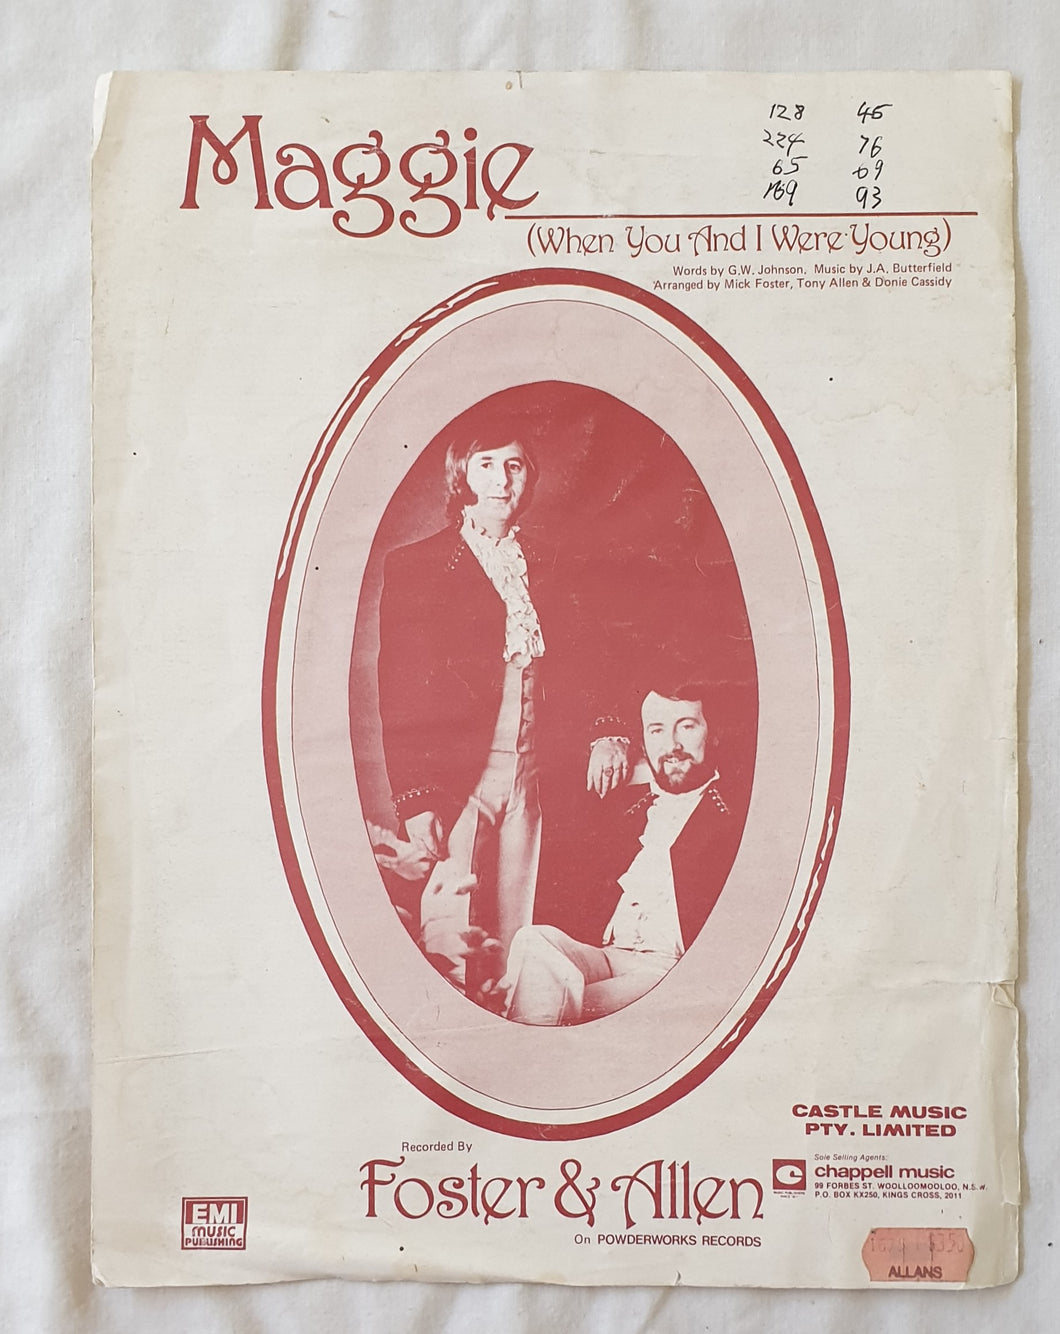 Maggie Recorded by Foster & Allen